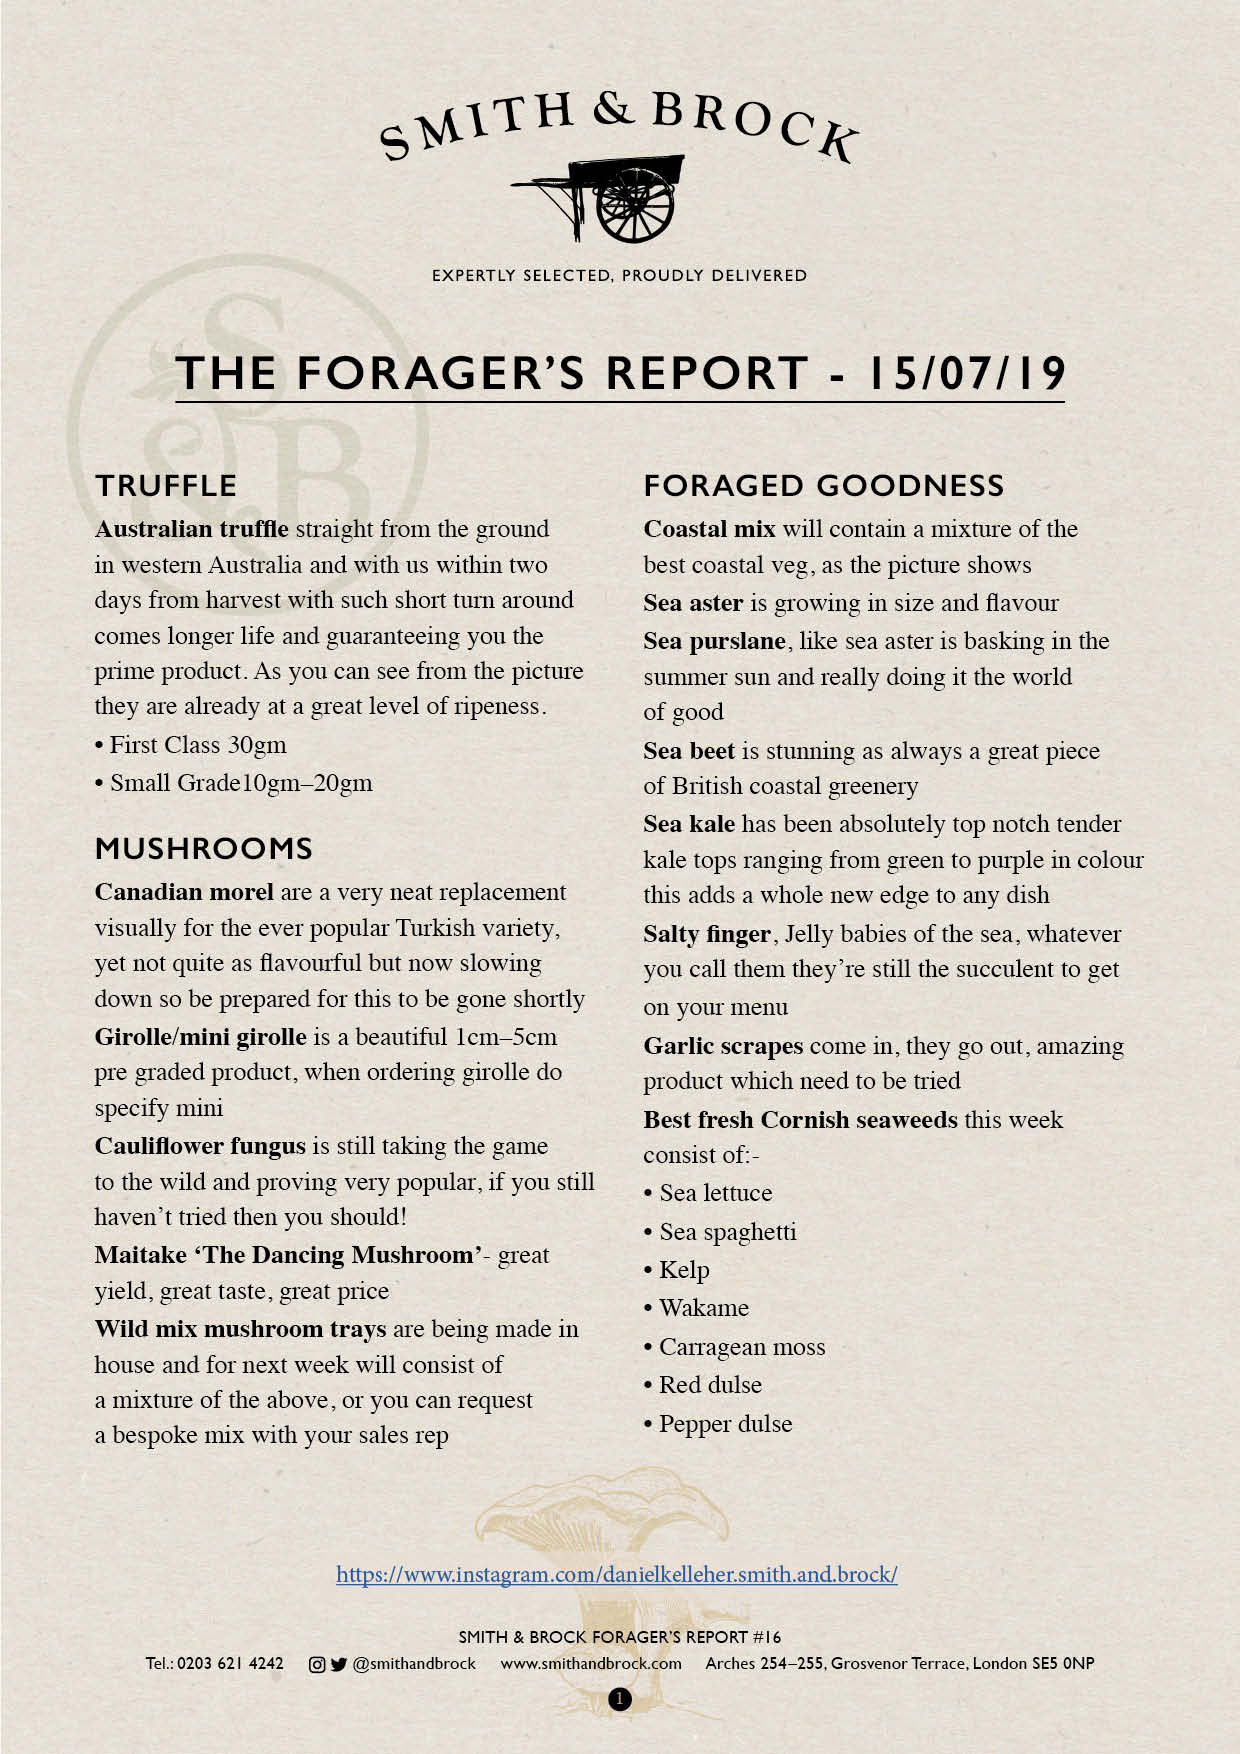 Smith&Brock Foraged Products Report 15 July 2019 16